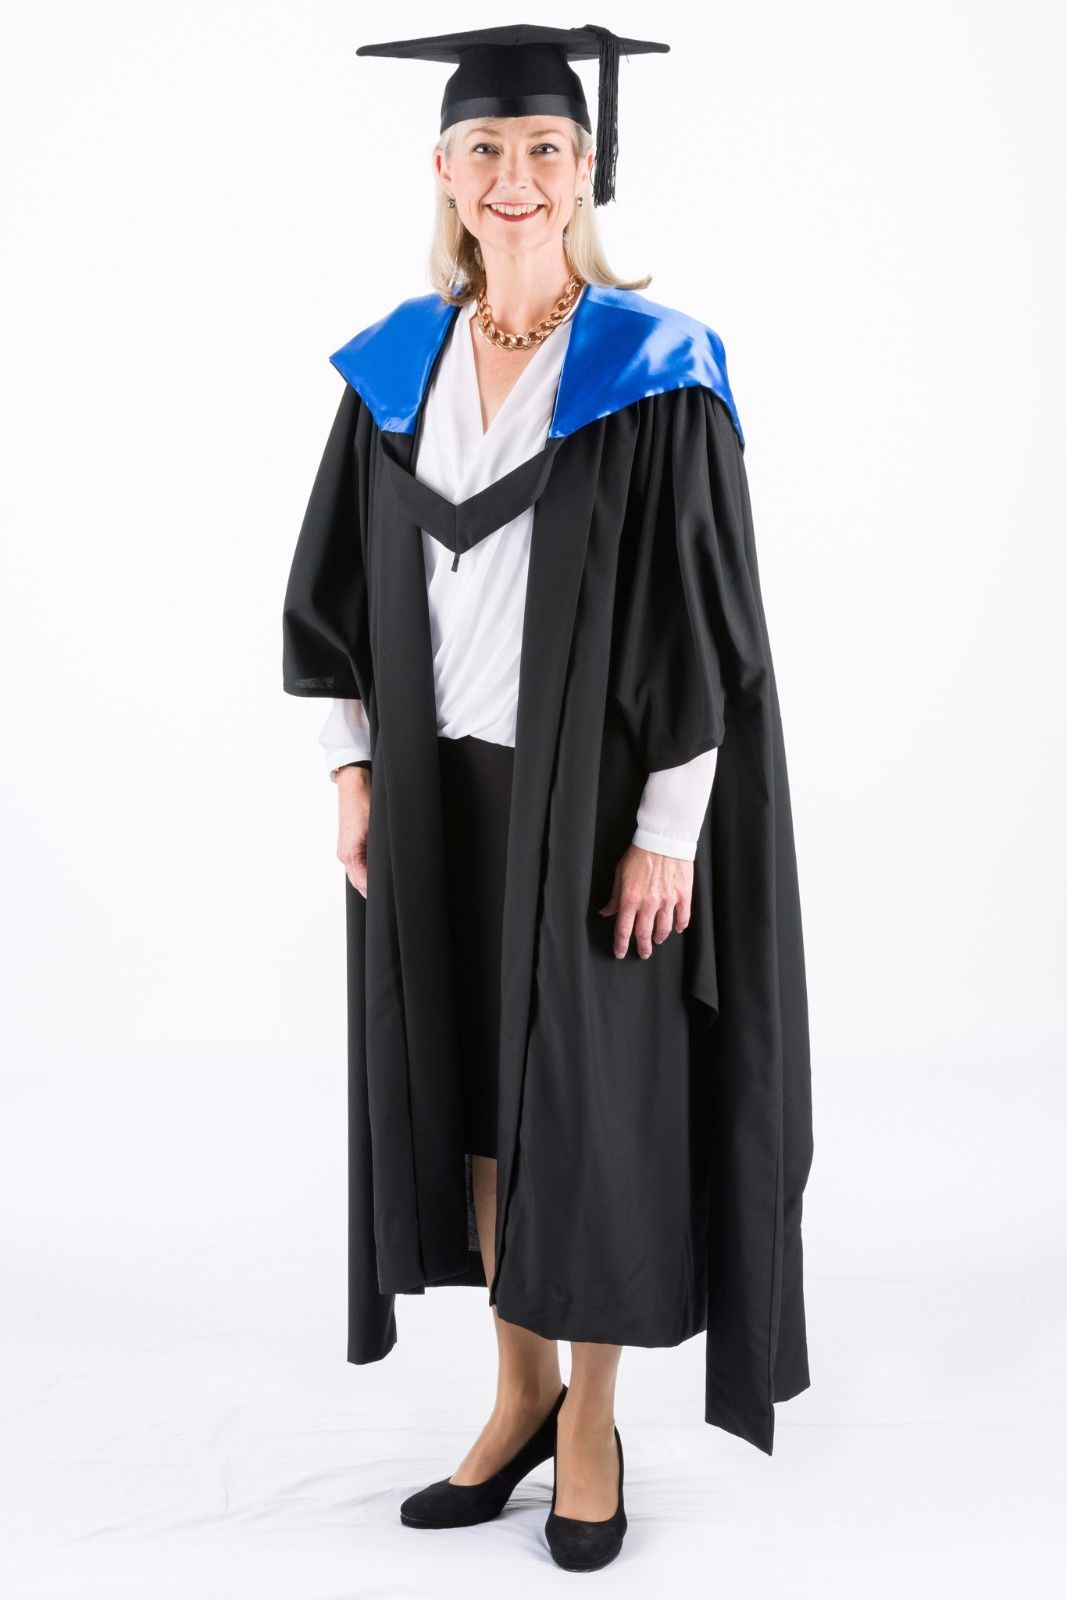 University-Academic-Hood-Graduation-Masters-Fully-Lined-with-Blue-382202368463